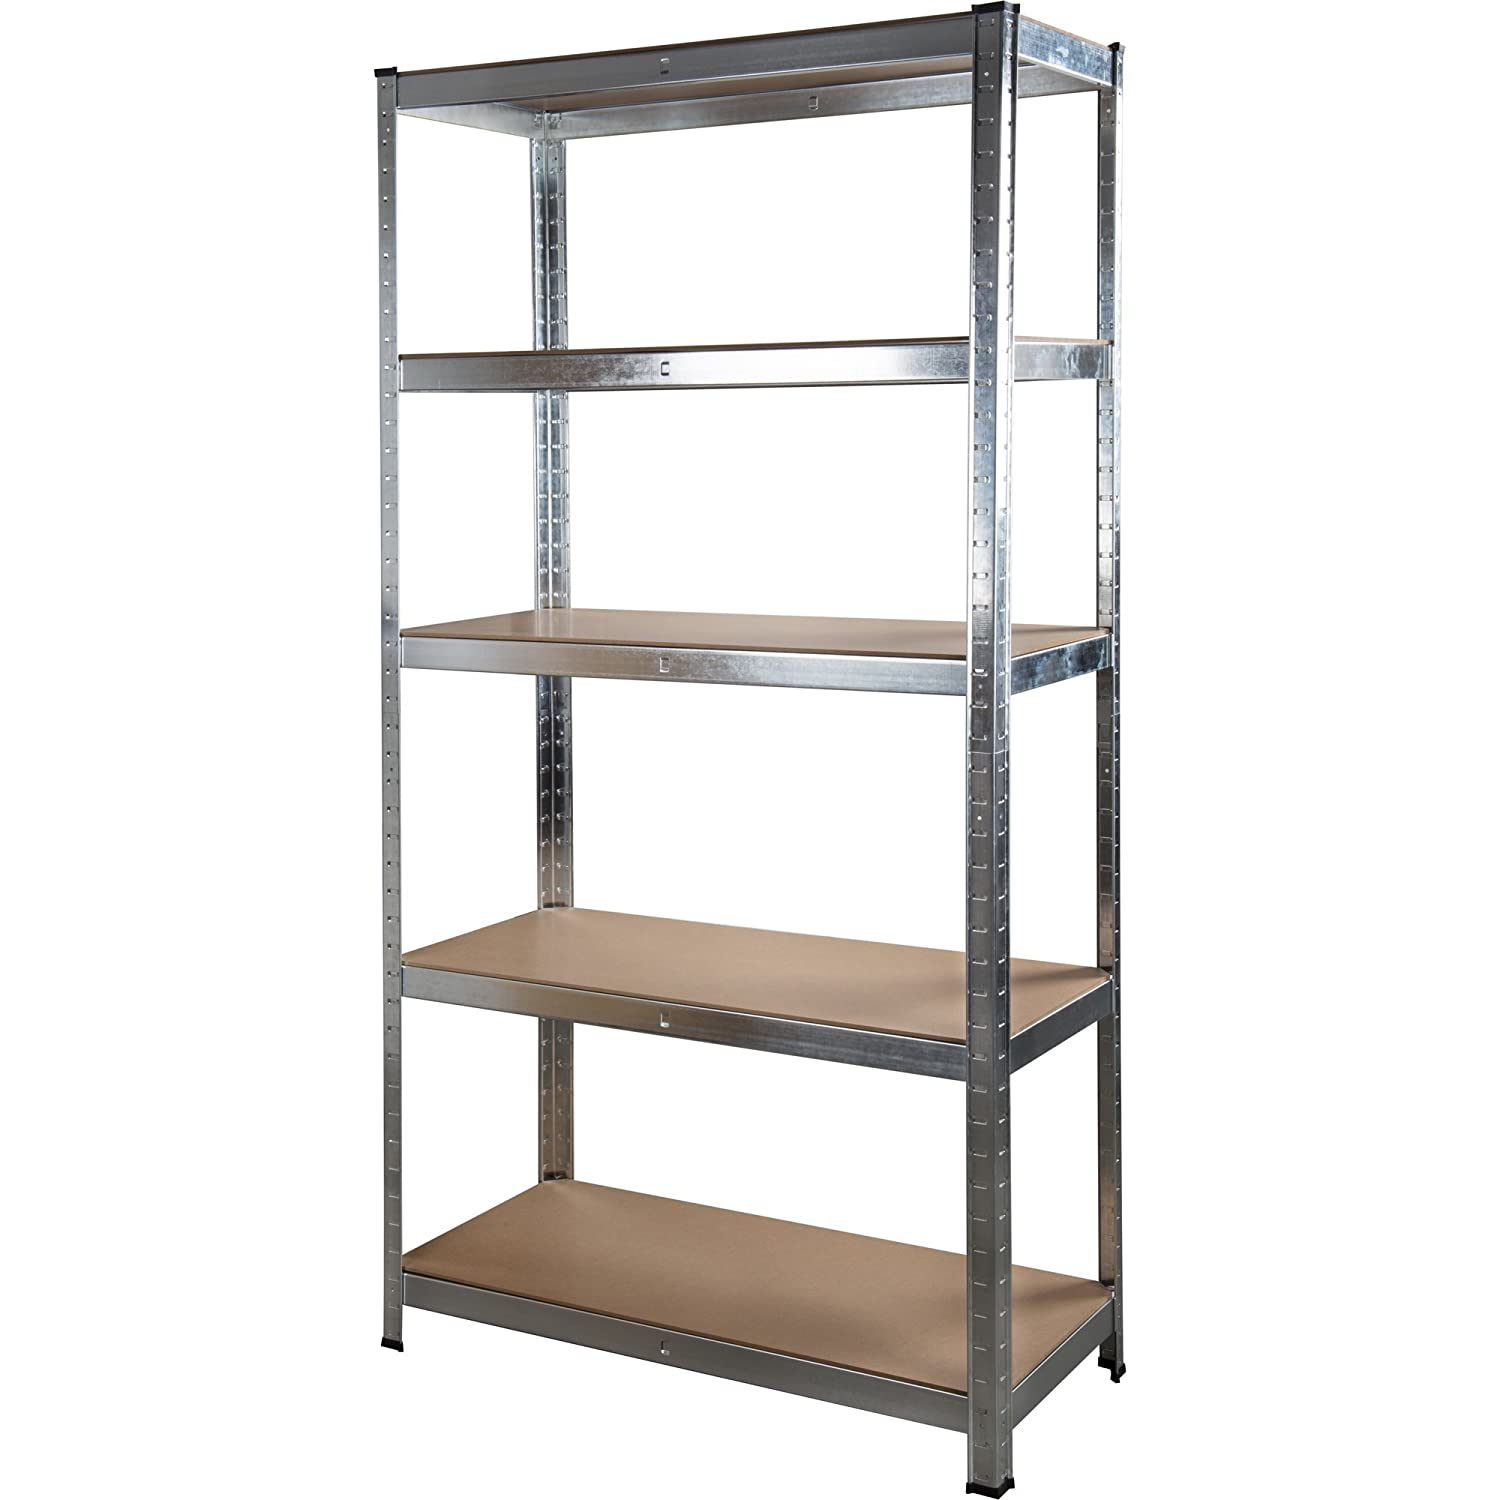 18m heavy duty 5tier metal boltless shelving and racking 180cm x 90cm x 40cm amazoncouk kitchen u0026 home - Metal Shelving Unit